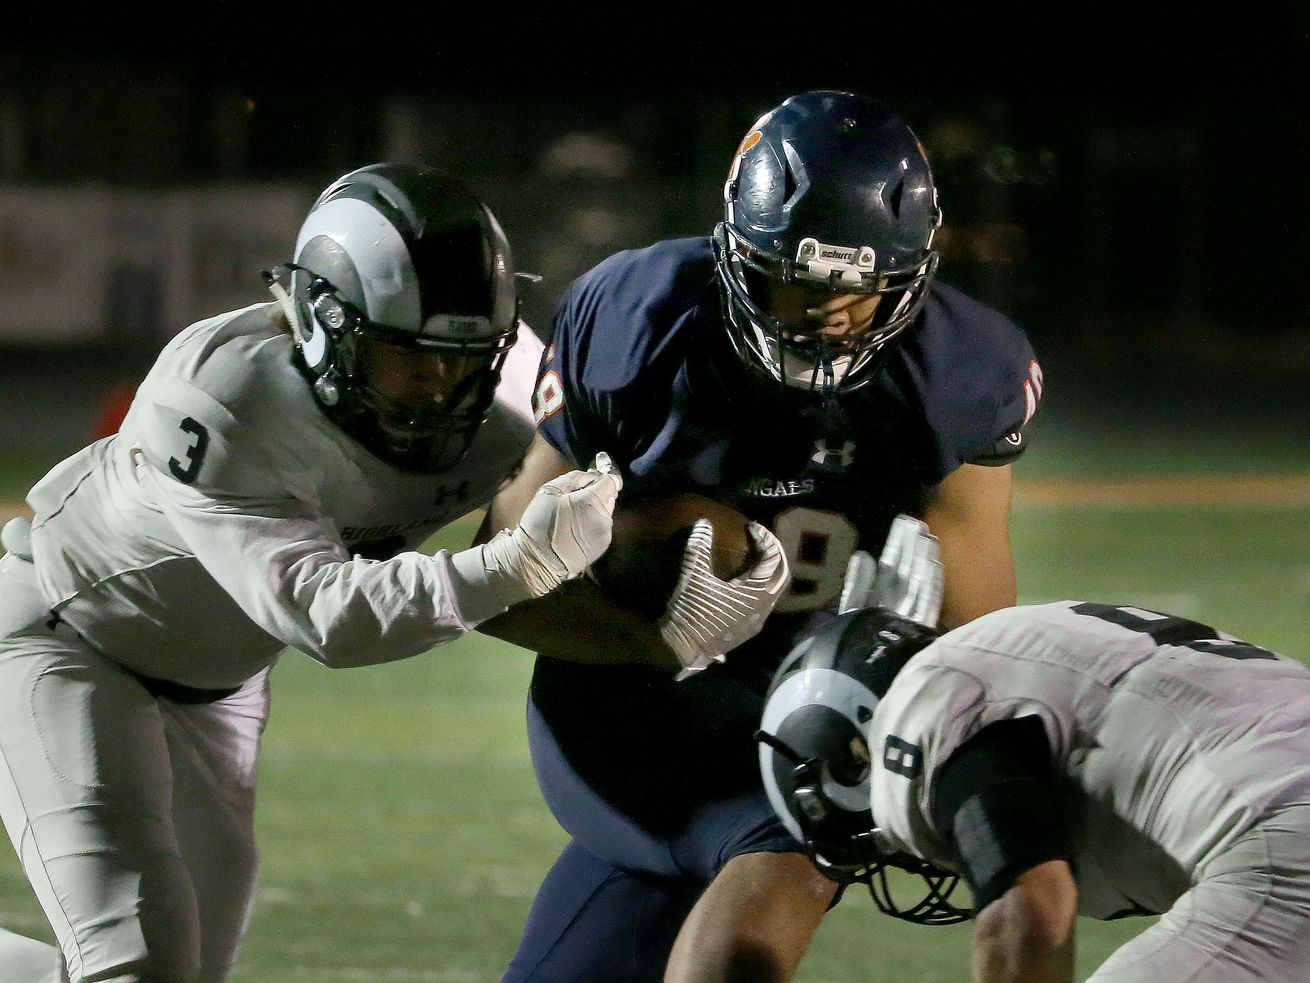 Scores, stats, videos and pictures: High school football roundup for Wednesday, Oct. 16